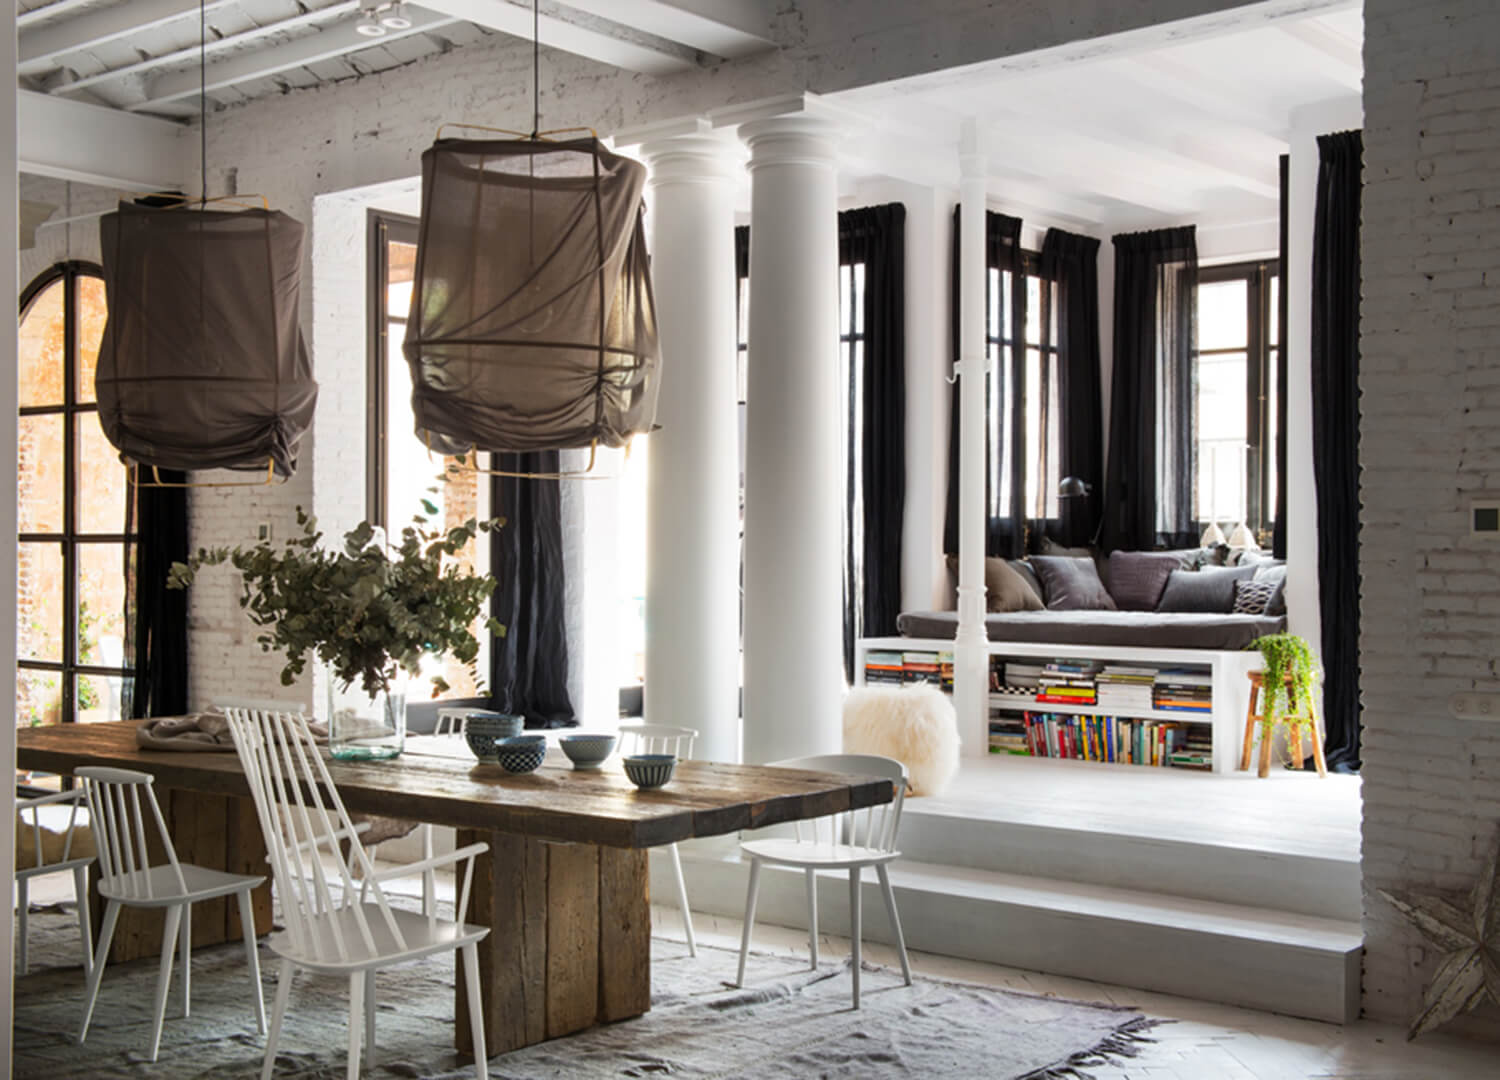 est-living-barcelona-loft-serrat-tort-architects-dining